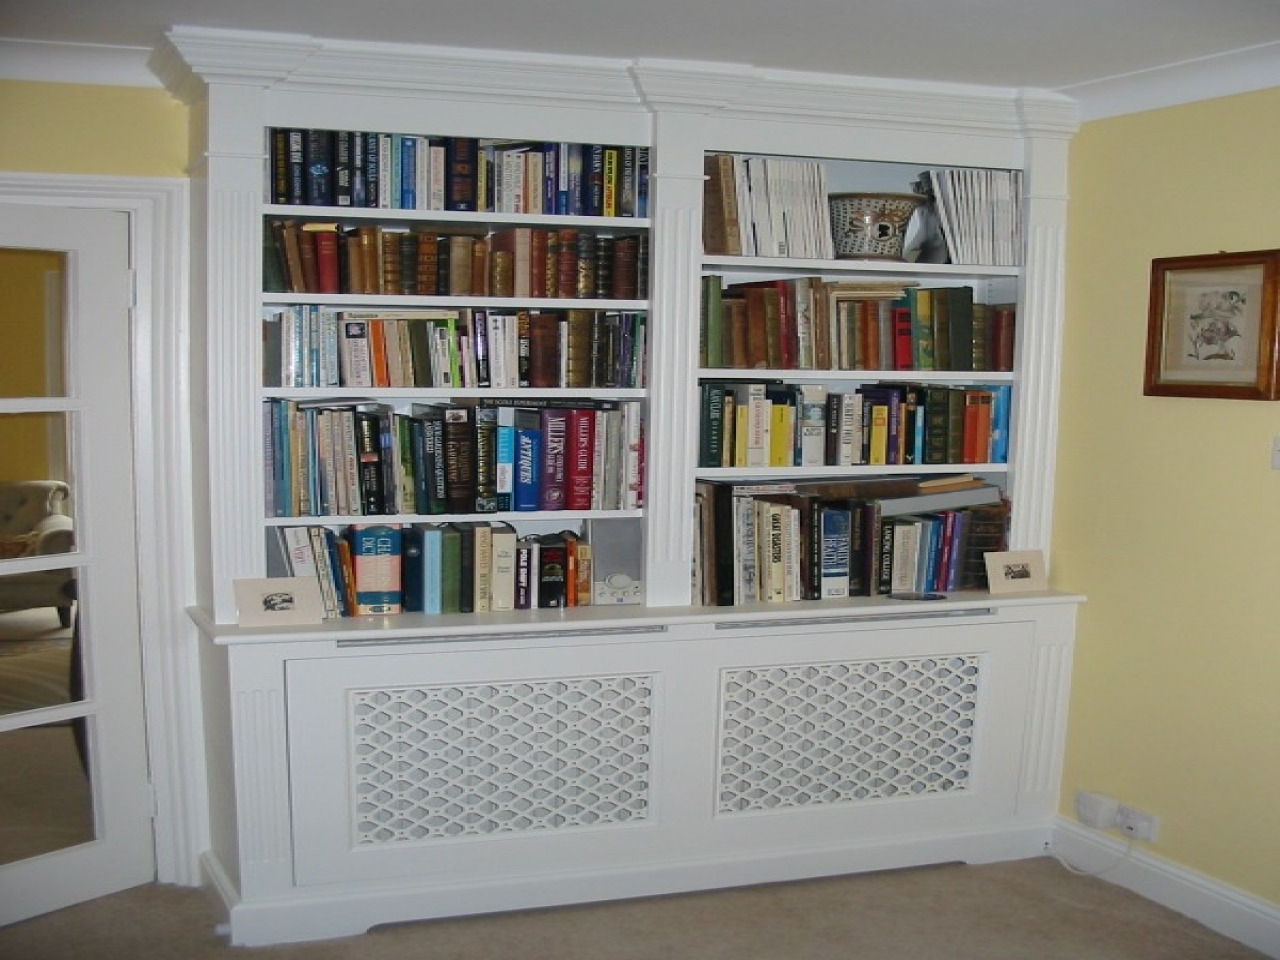 Cupboard Bookcase Radiator Bookcase Cover Over Radiator Cover Regarding Radiator Covers And Bookcases (Image 8 of 15)